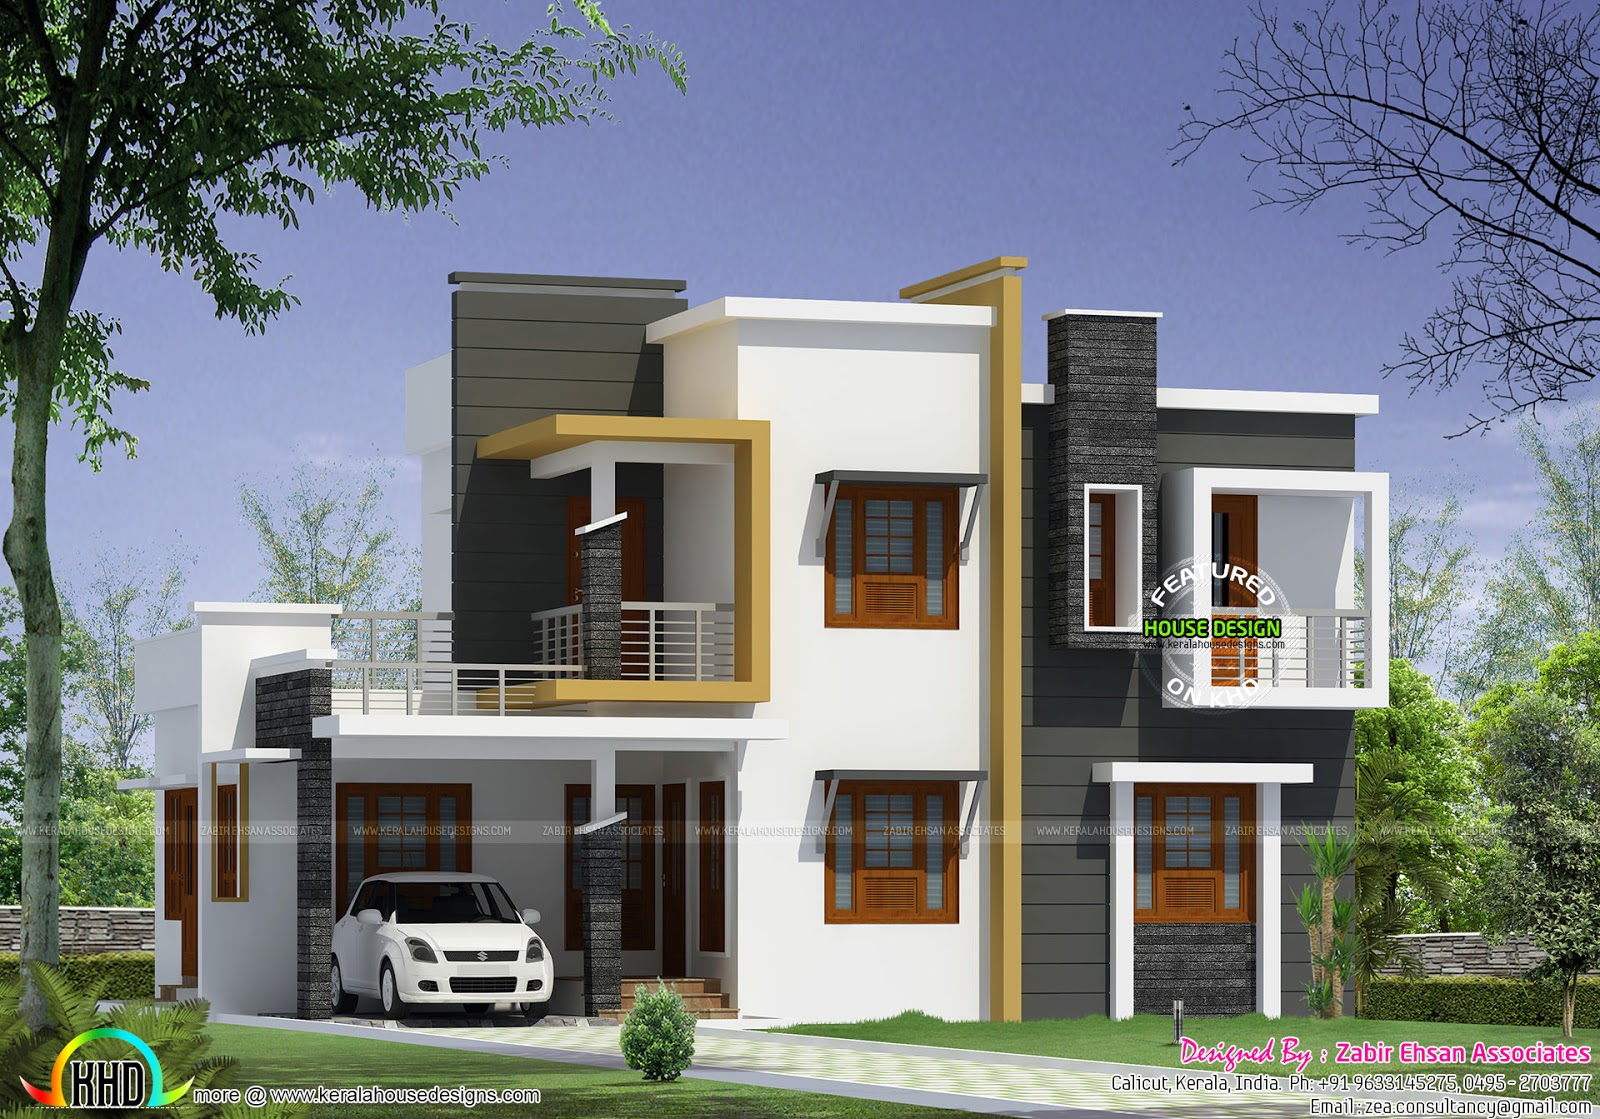 Box type modern house plan kerala home design and floor for Modern home design floor plans